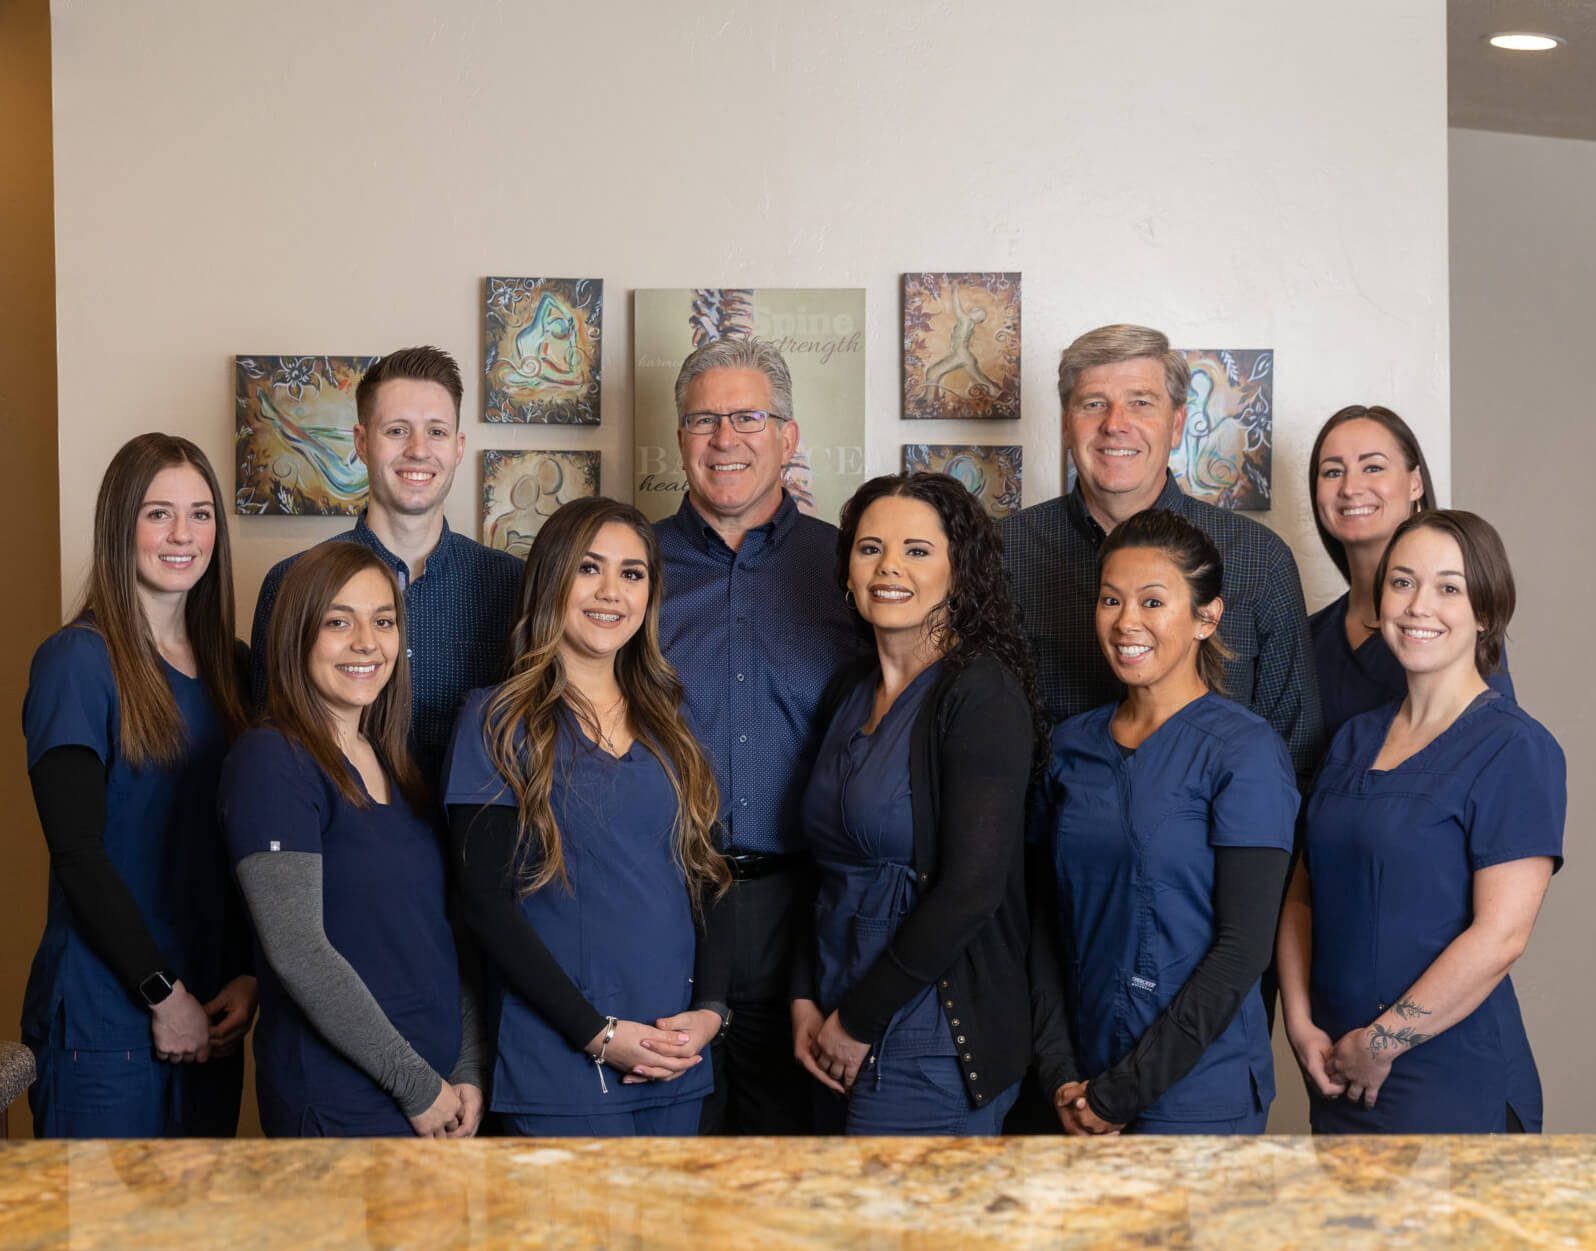 Dixie Chiropractic – Listing – McMullin Injury Law